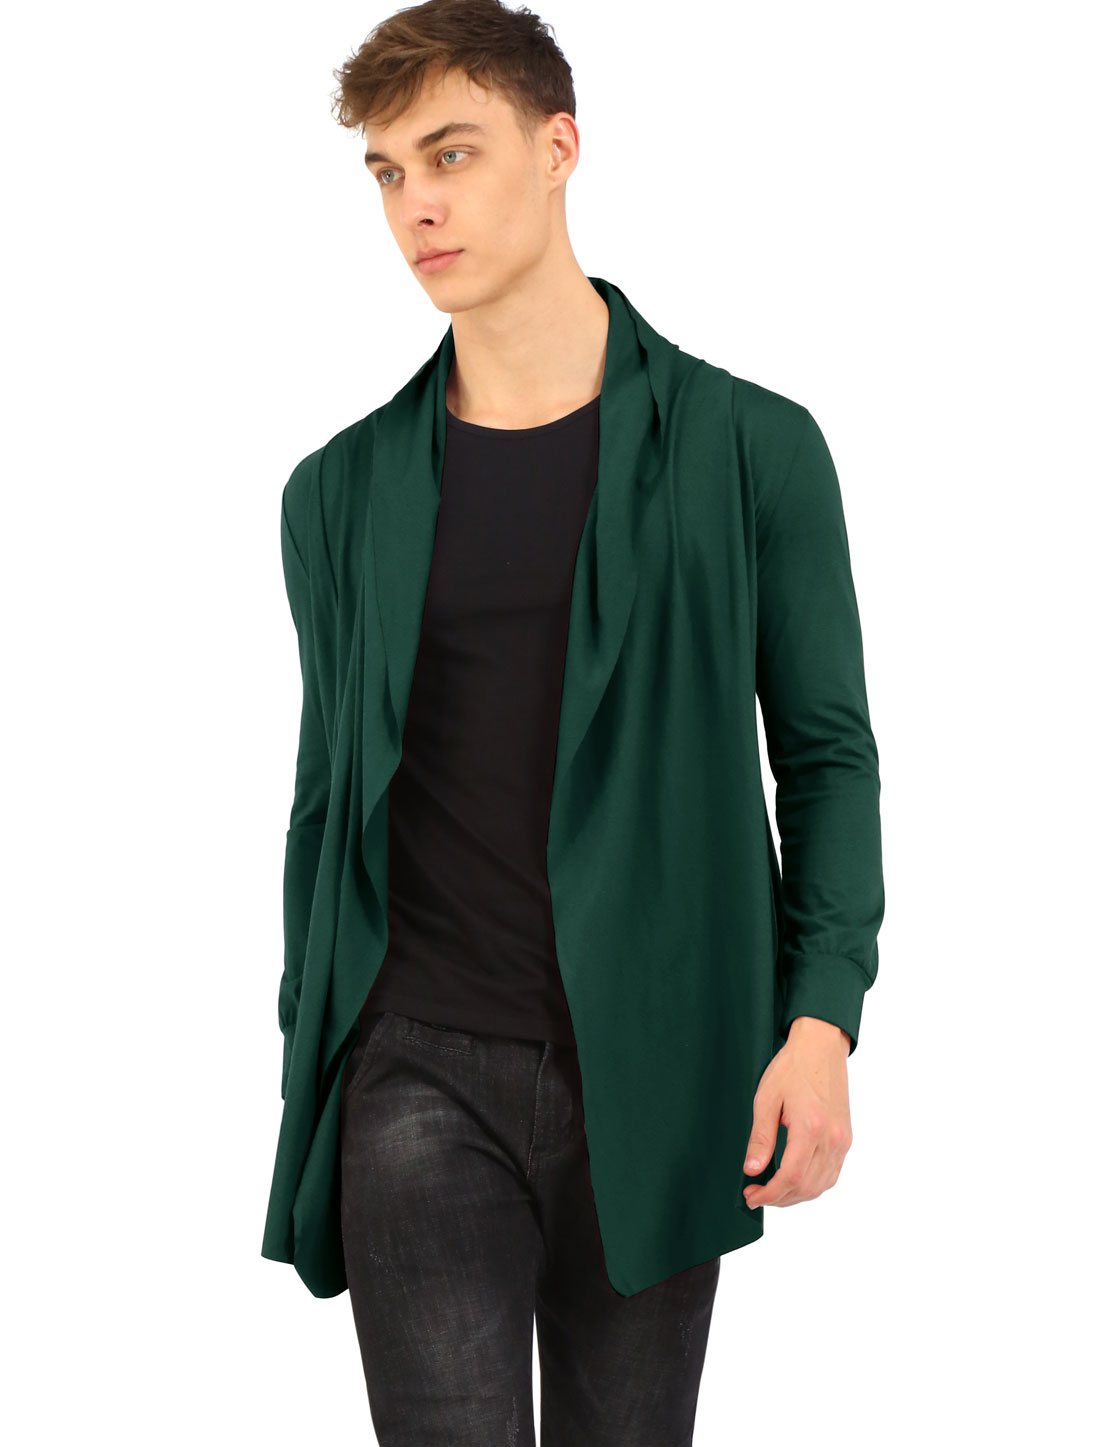 Men Open Front Long Sleeve High-Low Hem Long Cardigans Green L